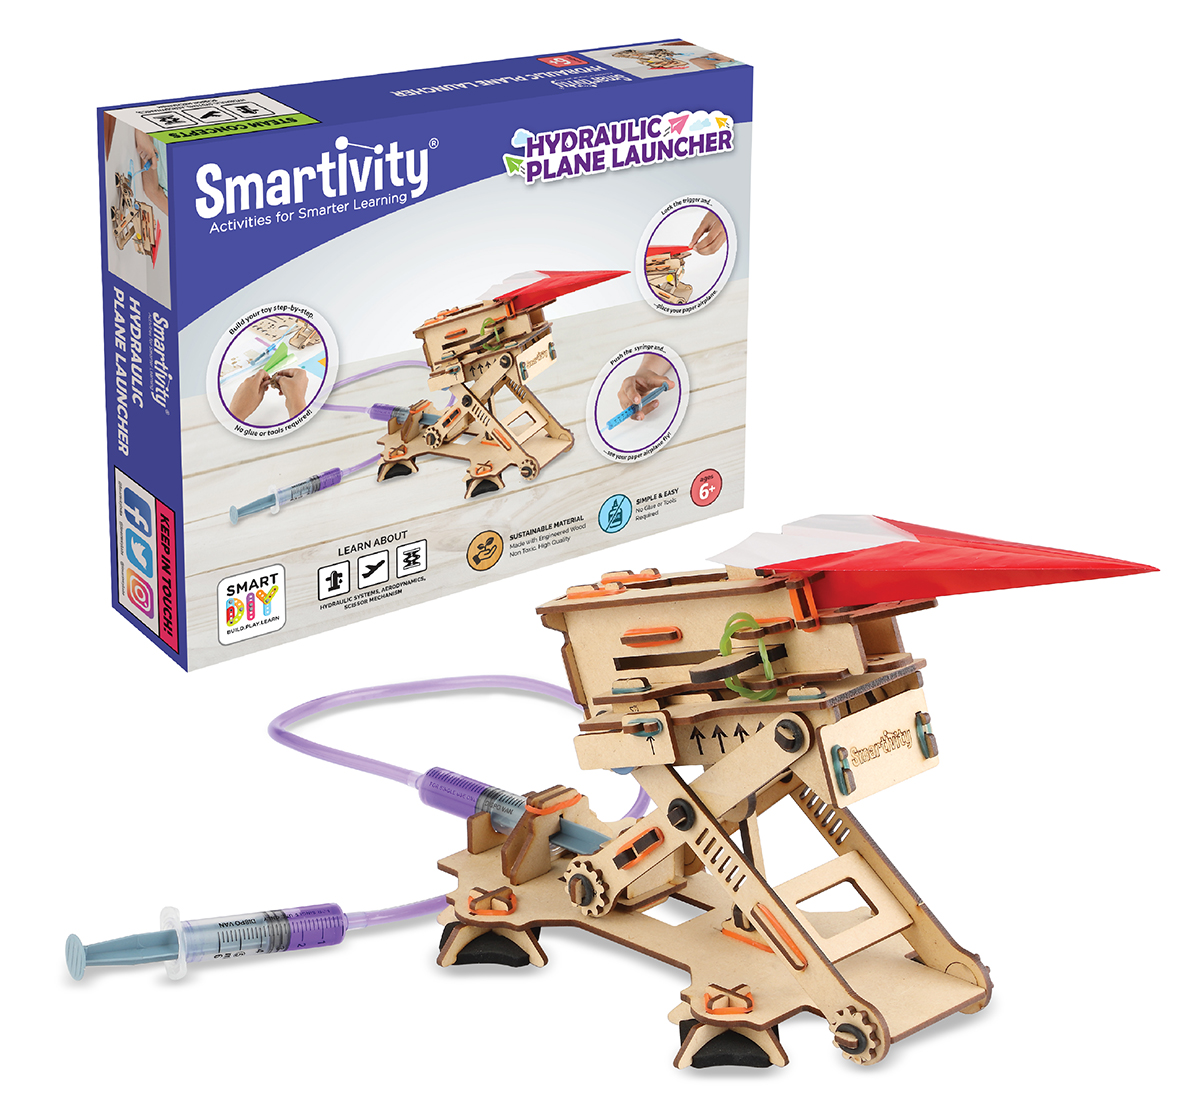 Smartivity | Smartivity Hydraulic Plane Launcher, Stem, Learning, Educational And Construction Activity Toy Gift (Multi-Color), Unisex, 6Y+ (Multicolor)